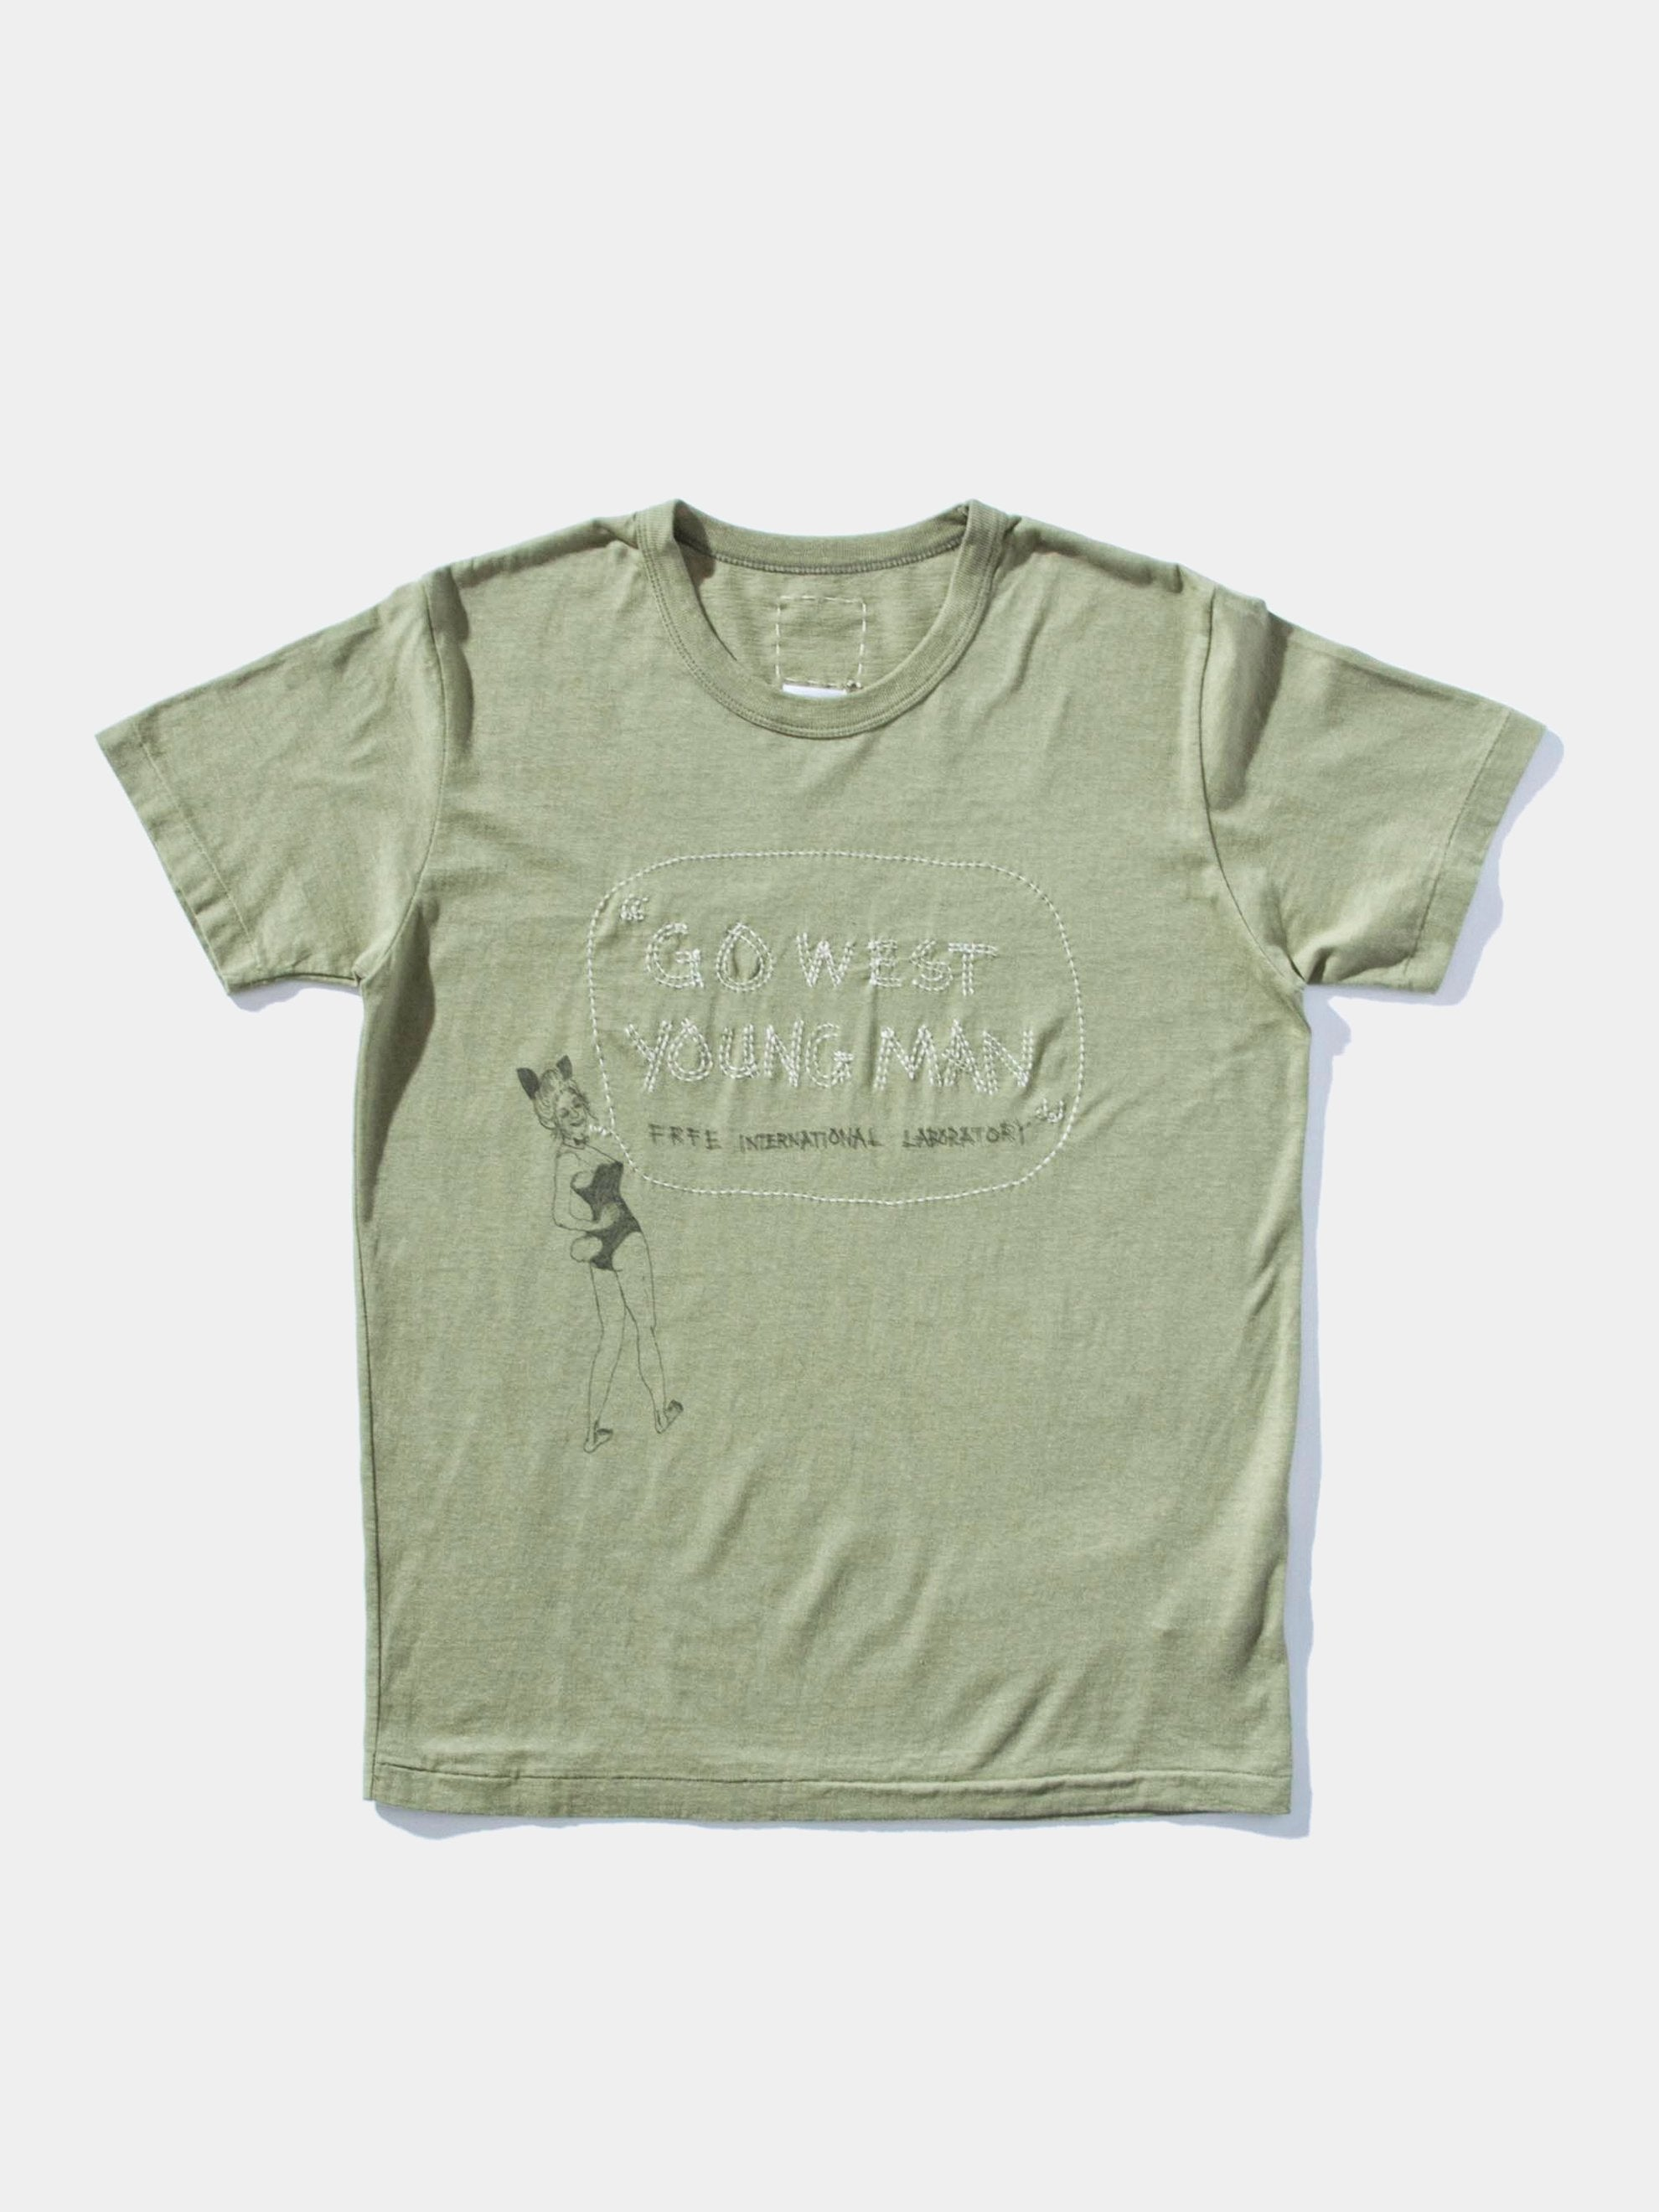 Green Wide Tee S/S Go West 1